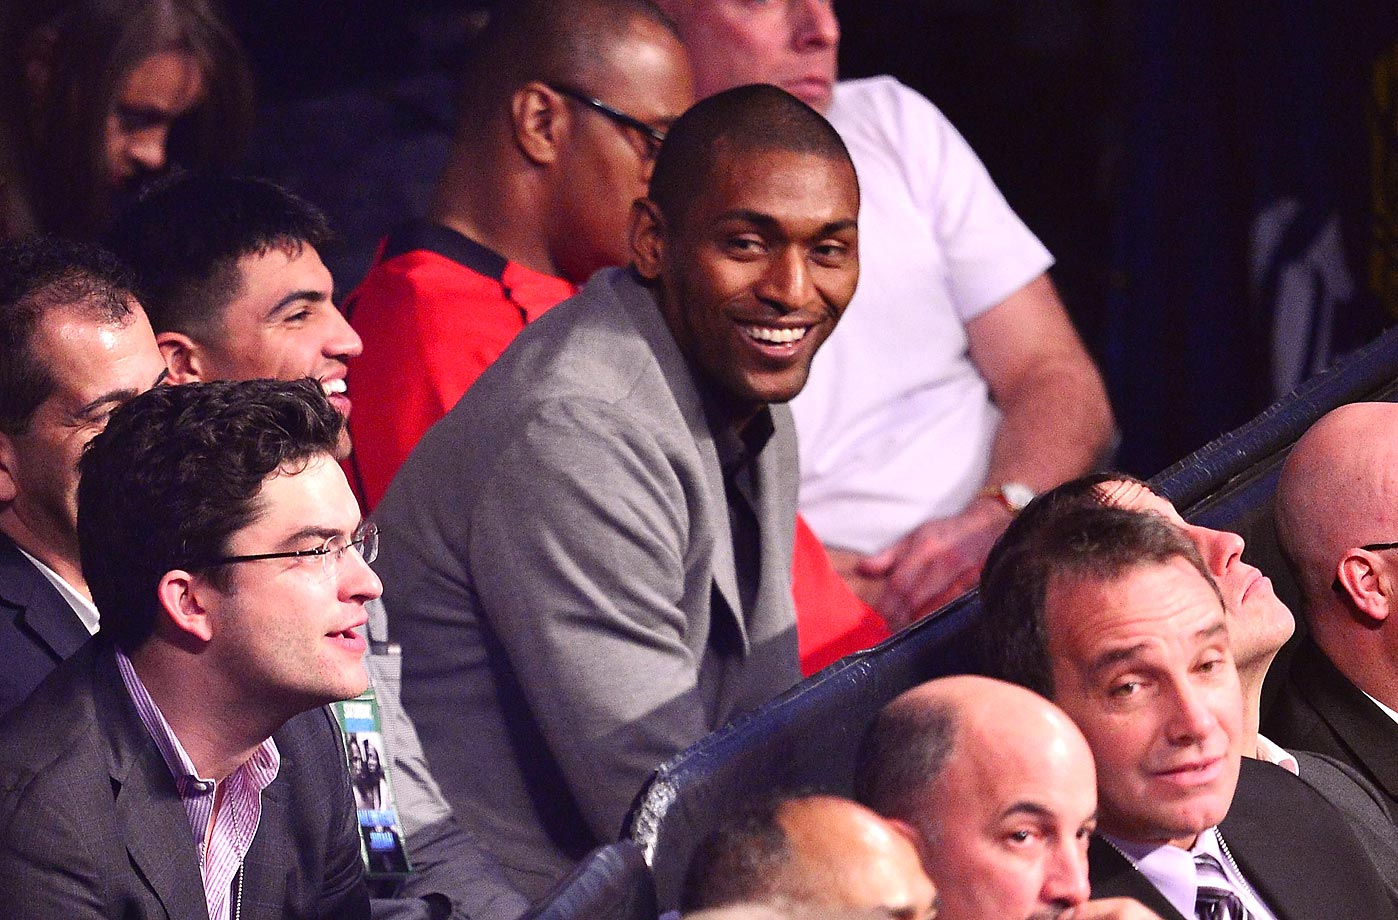 Metta World Peace attends the Paulie 'The Magic Man' Malignaggi vs Zab 'Super' Judah bout.